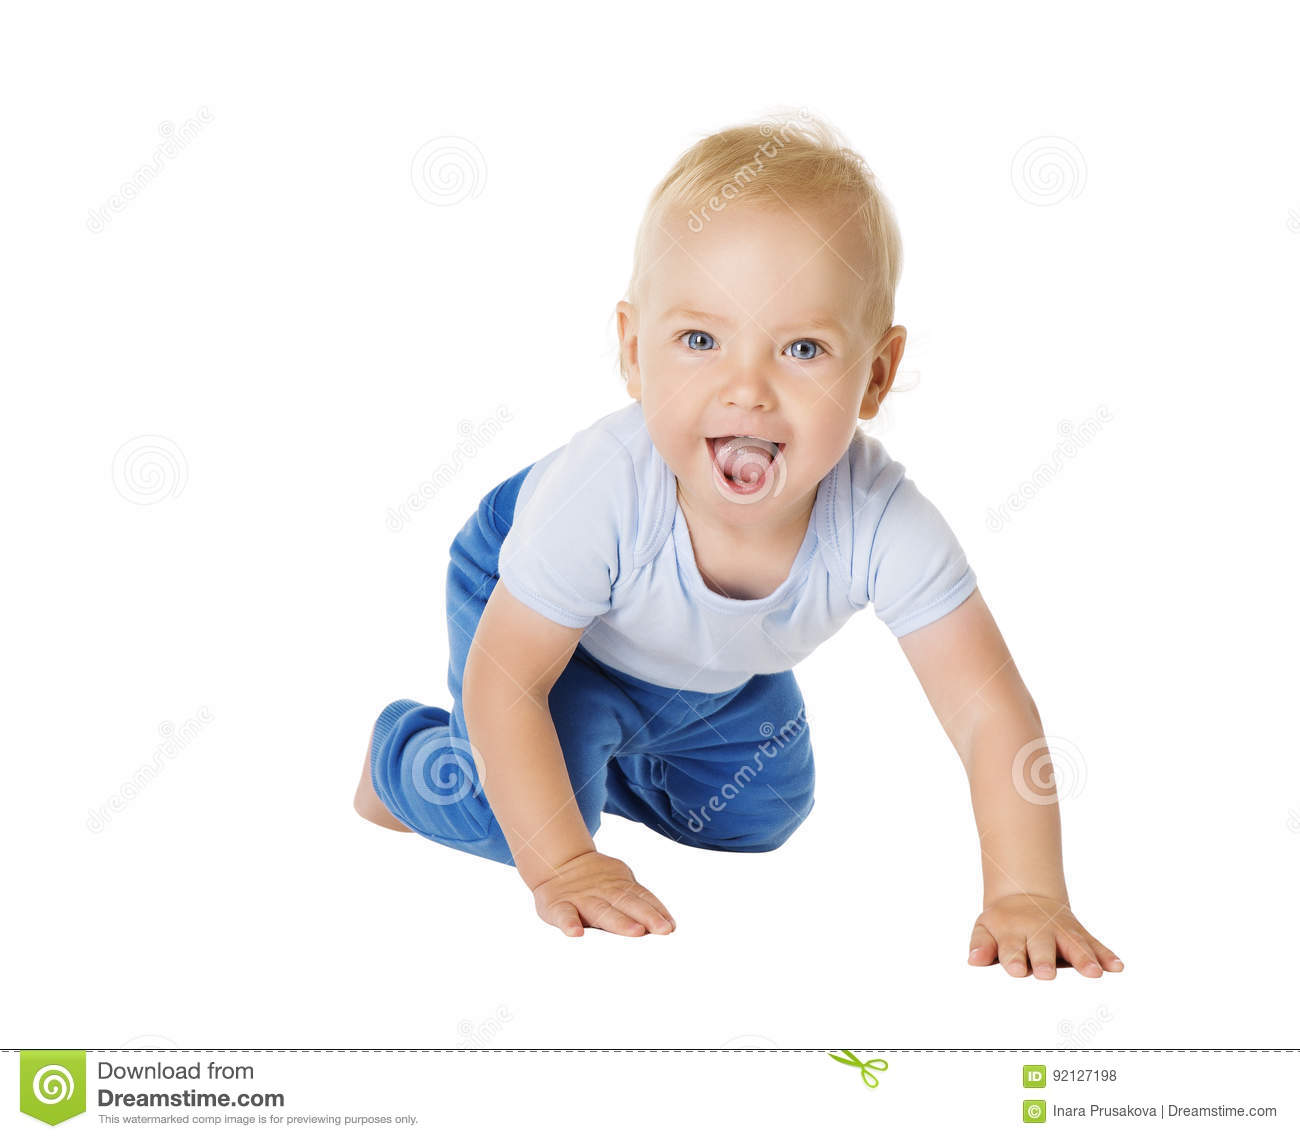 Baby Crawling over White Background, Happy Kid, Child Boy